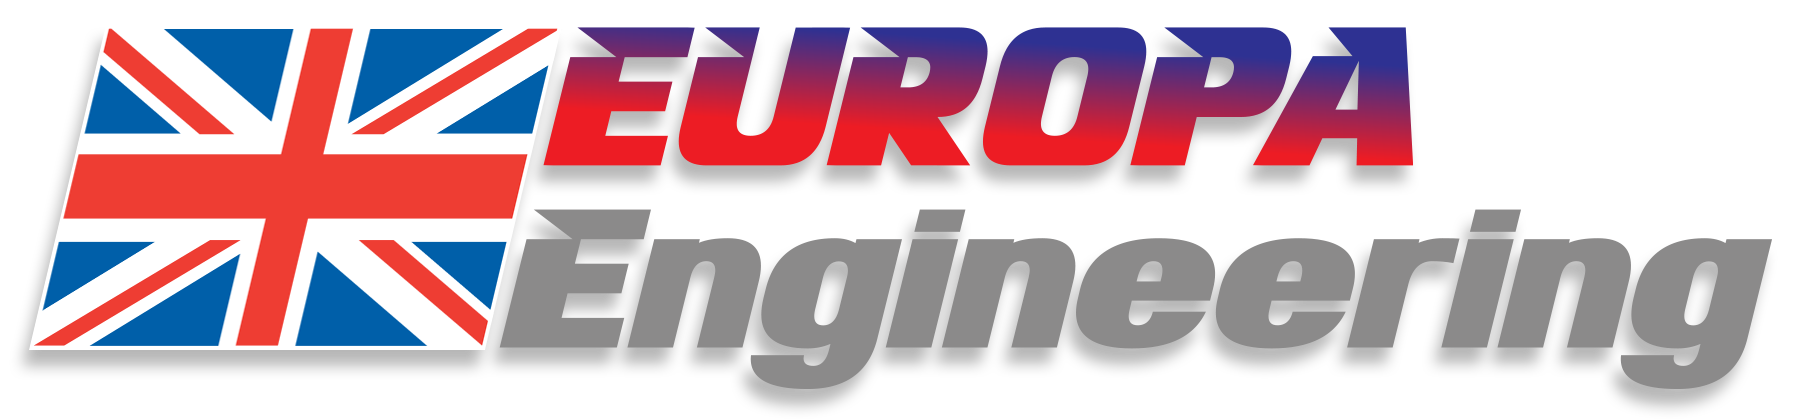 Europa Engineering